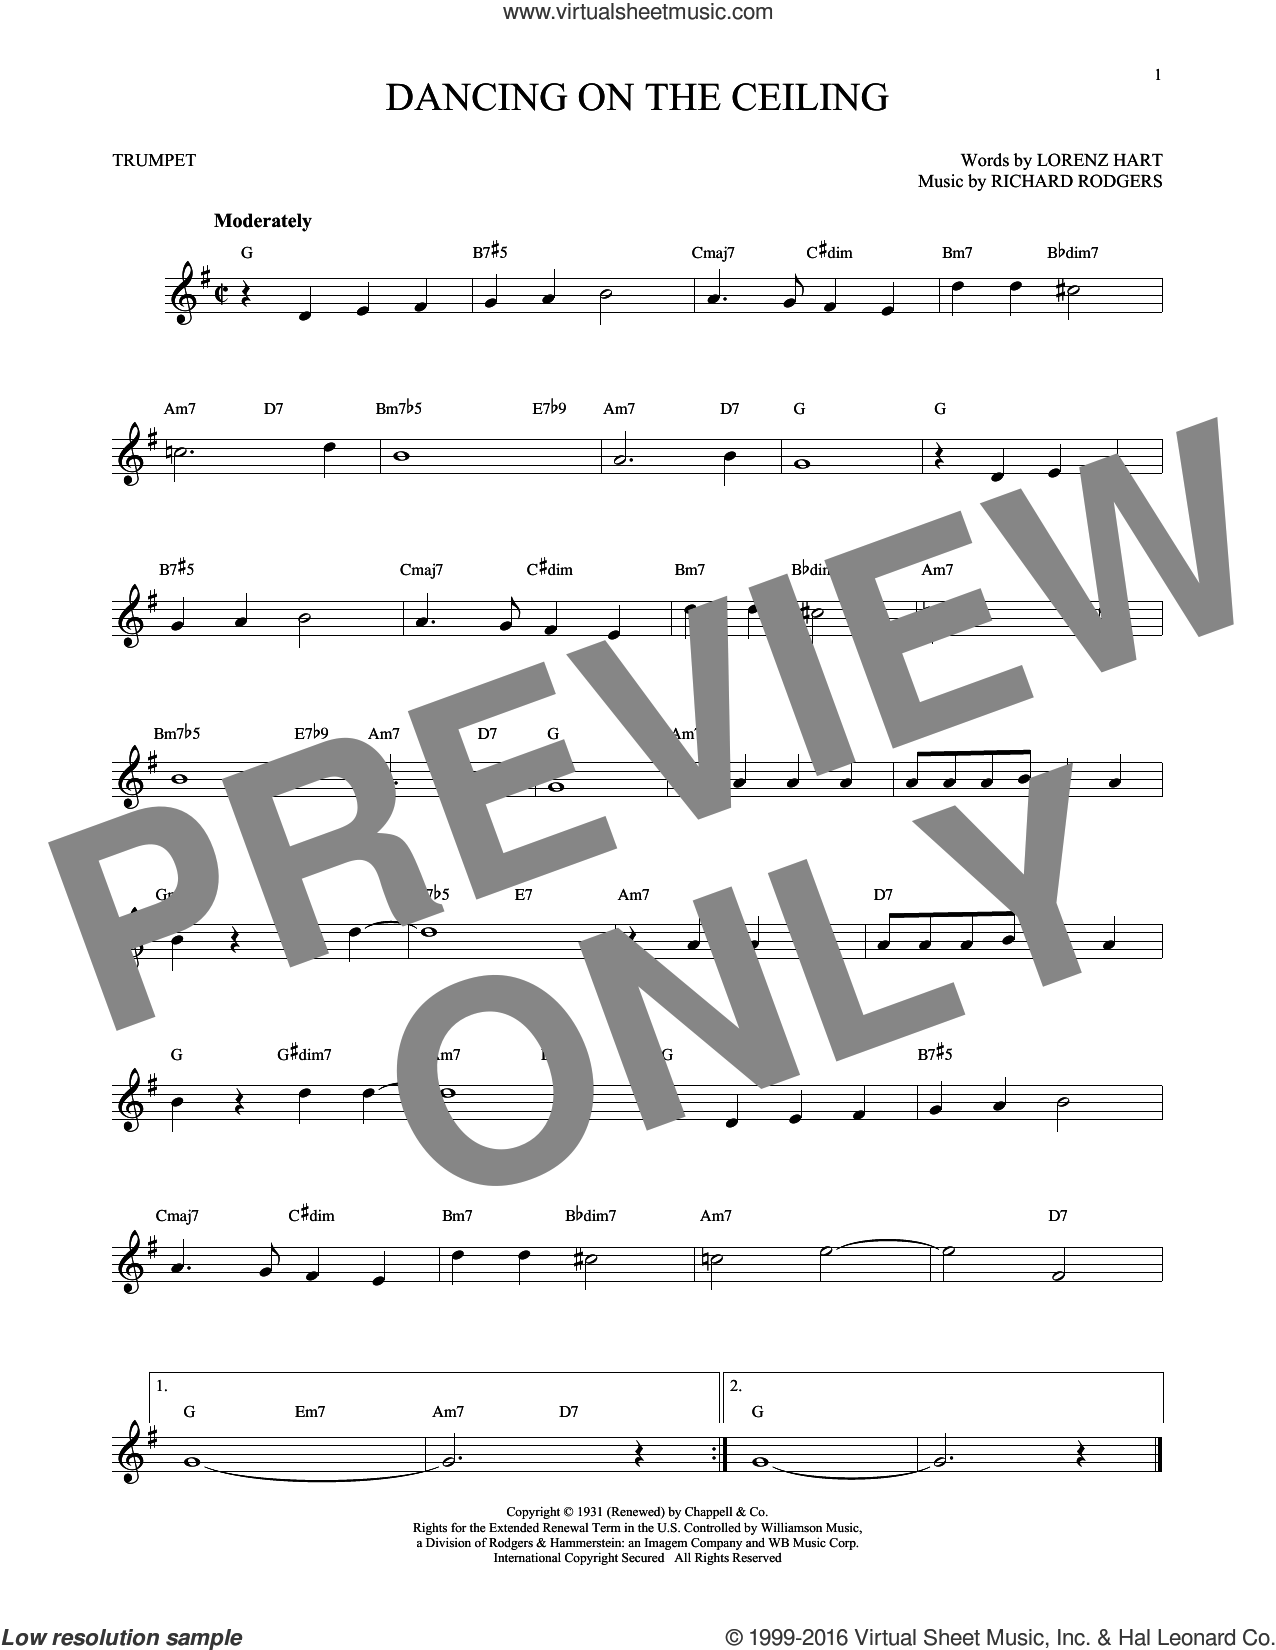 Dancing On The Ceiling sheet music for trumpet solo by Richard Rodgers